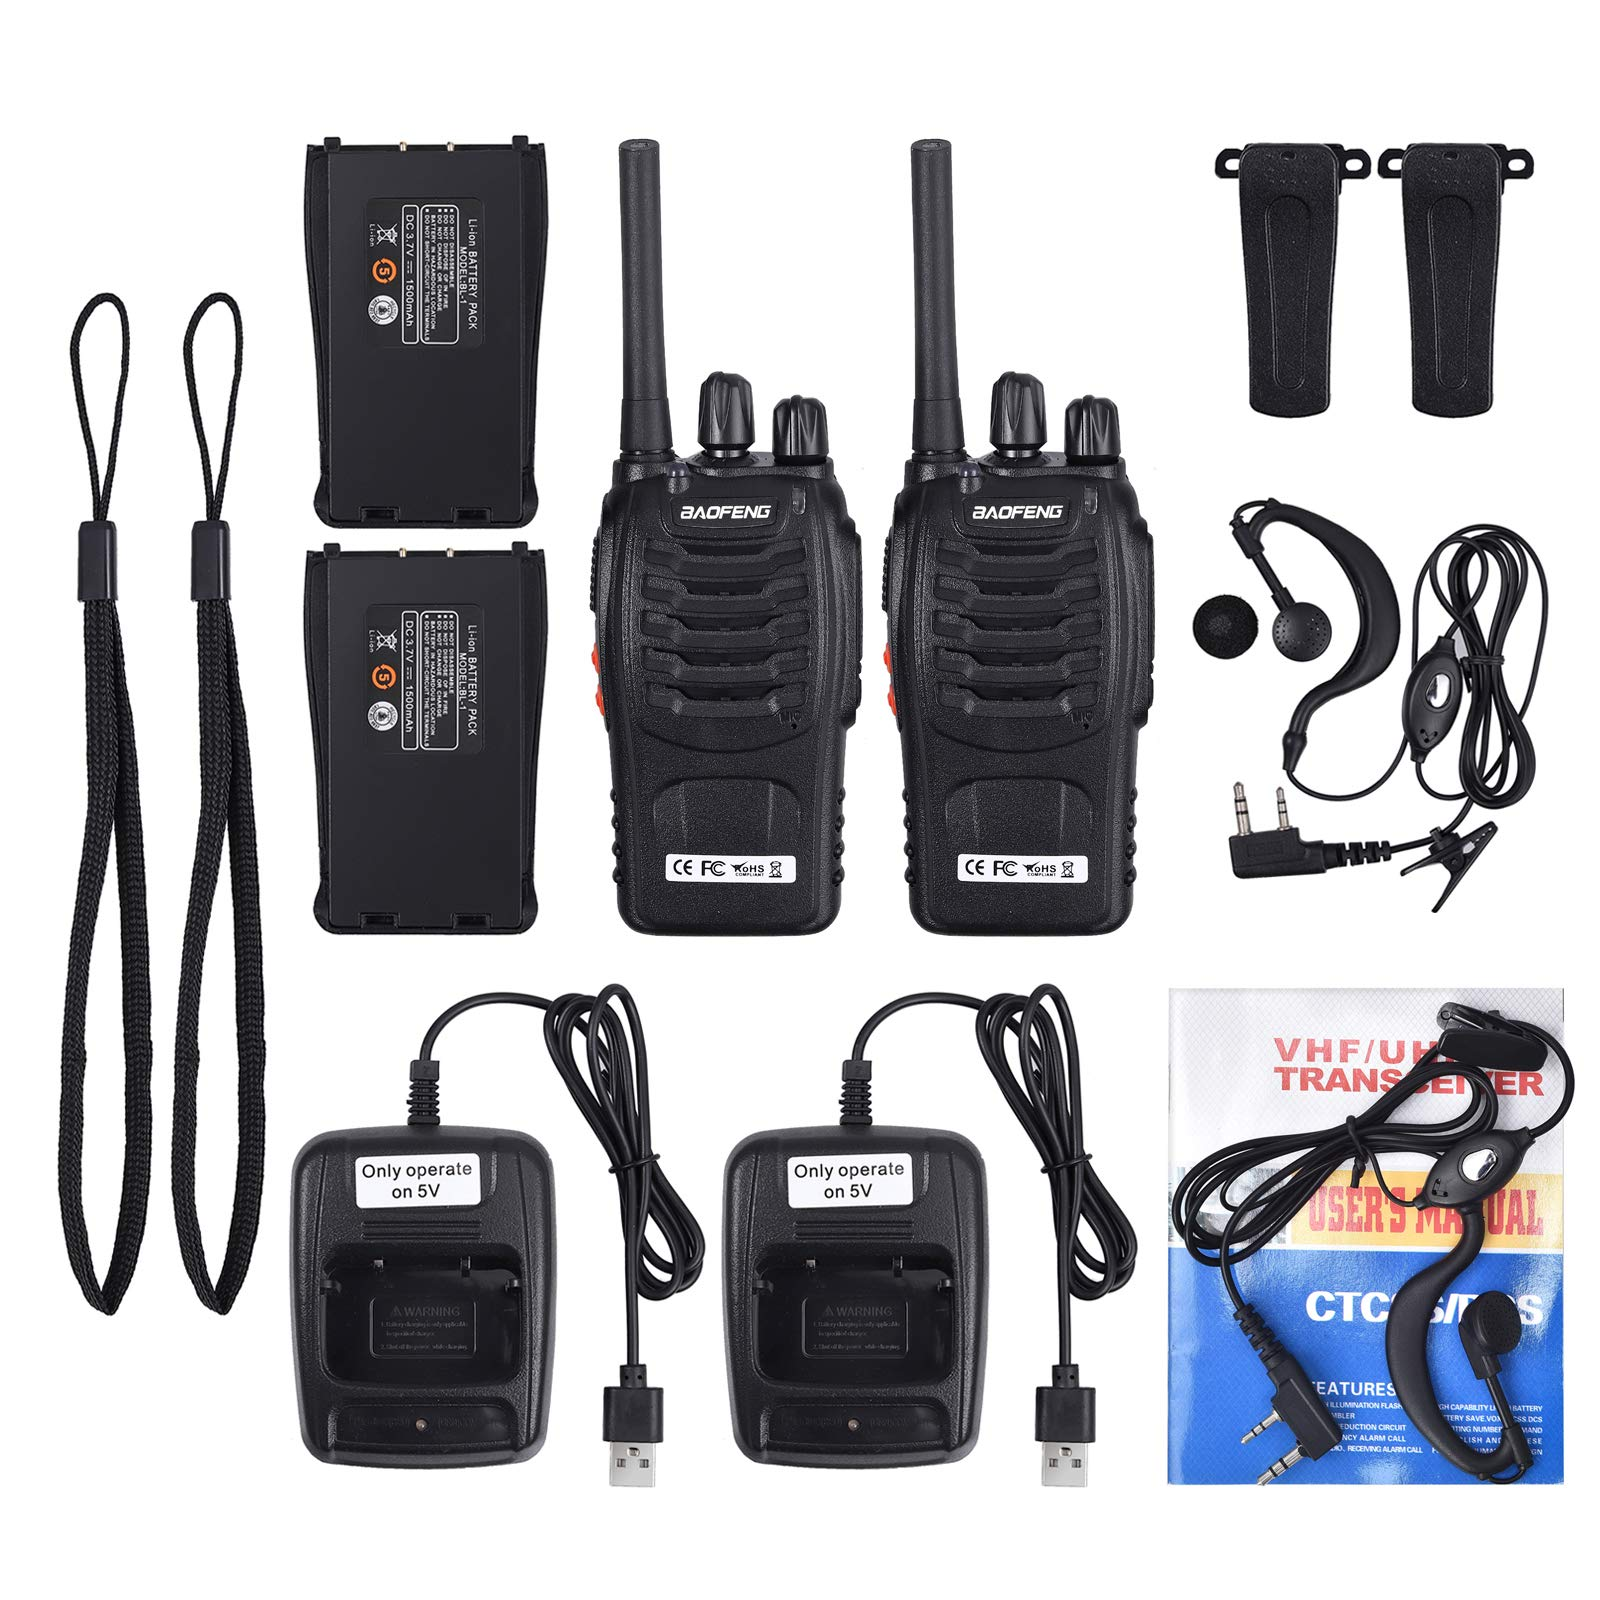 Neoteck 2 PCS Walkie Talkies Long Range 16 Channel 2 Way Radio FRS462MHz Walky Talky Rechargeable with USB Charger Original Earpieces for Field Survival Biking Hiking by Neoteck (Image #5)